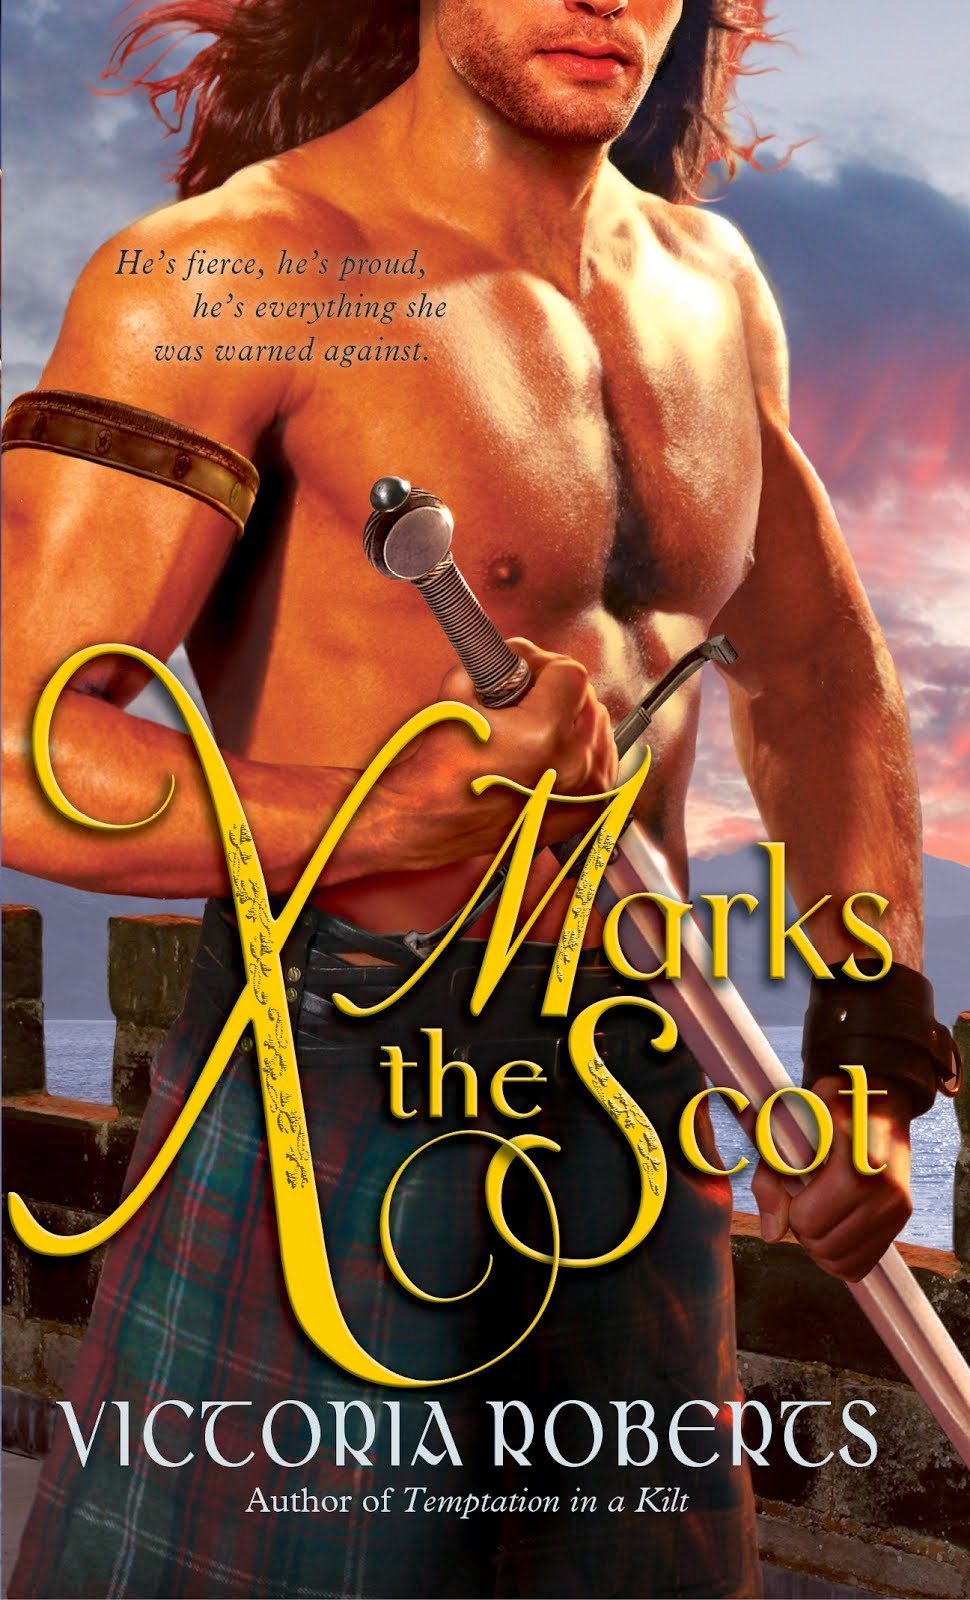 X Marks the Scot ~ 2013 RT Reviewers' Choice Award Winner, Book #2 of Bad Boys of the Highlands